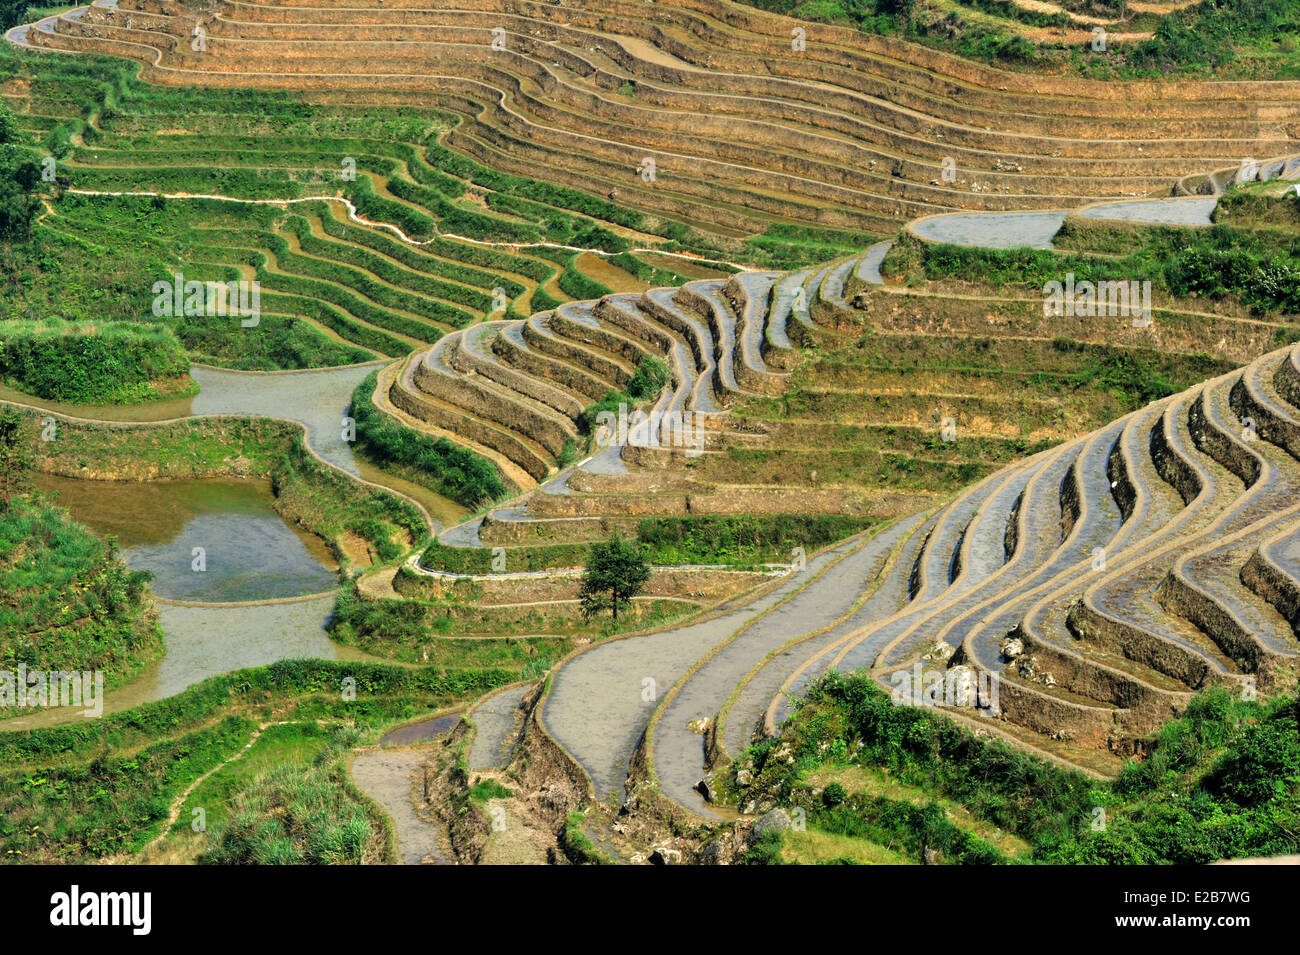 China, Guangxi Province, Longsheng, rice terraces at Longji - Stock Image